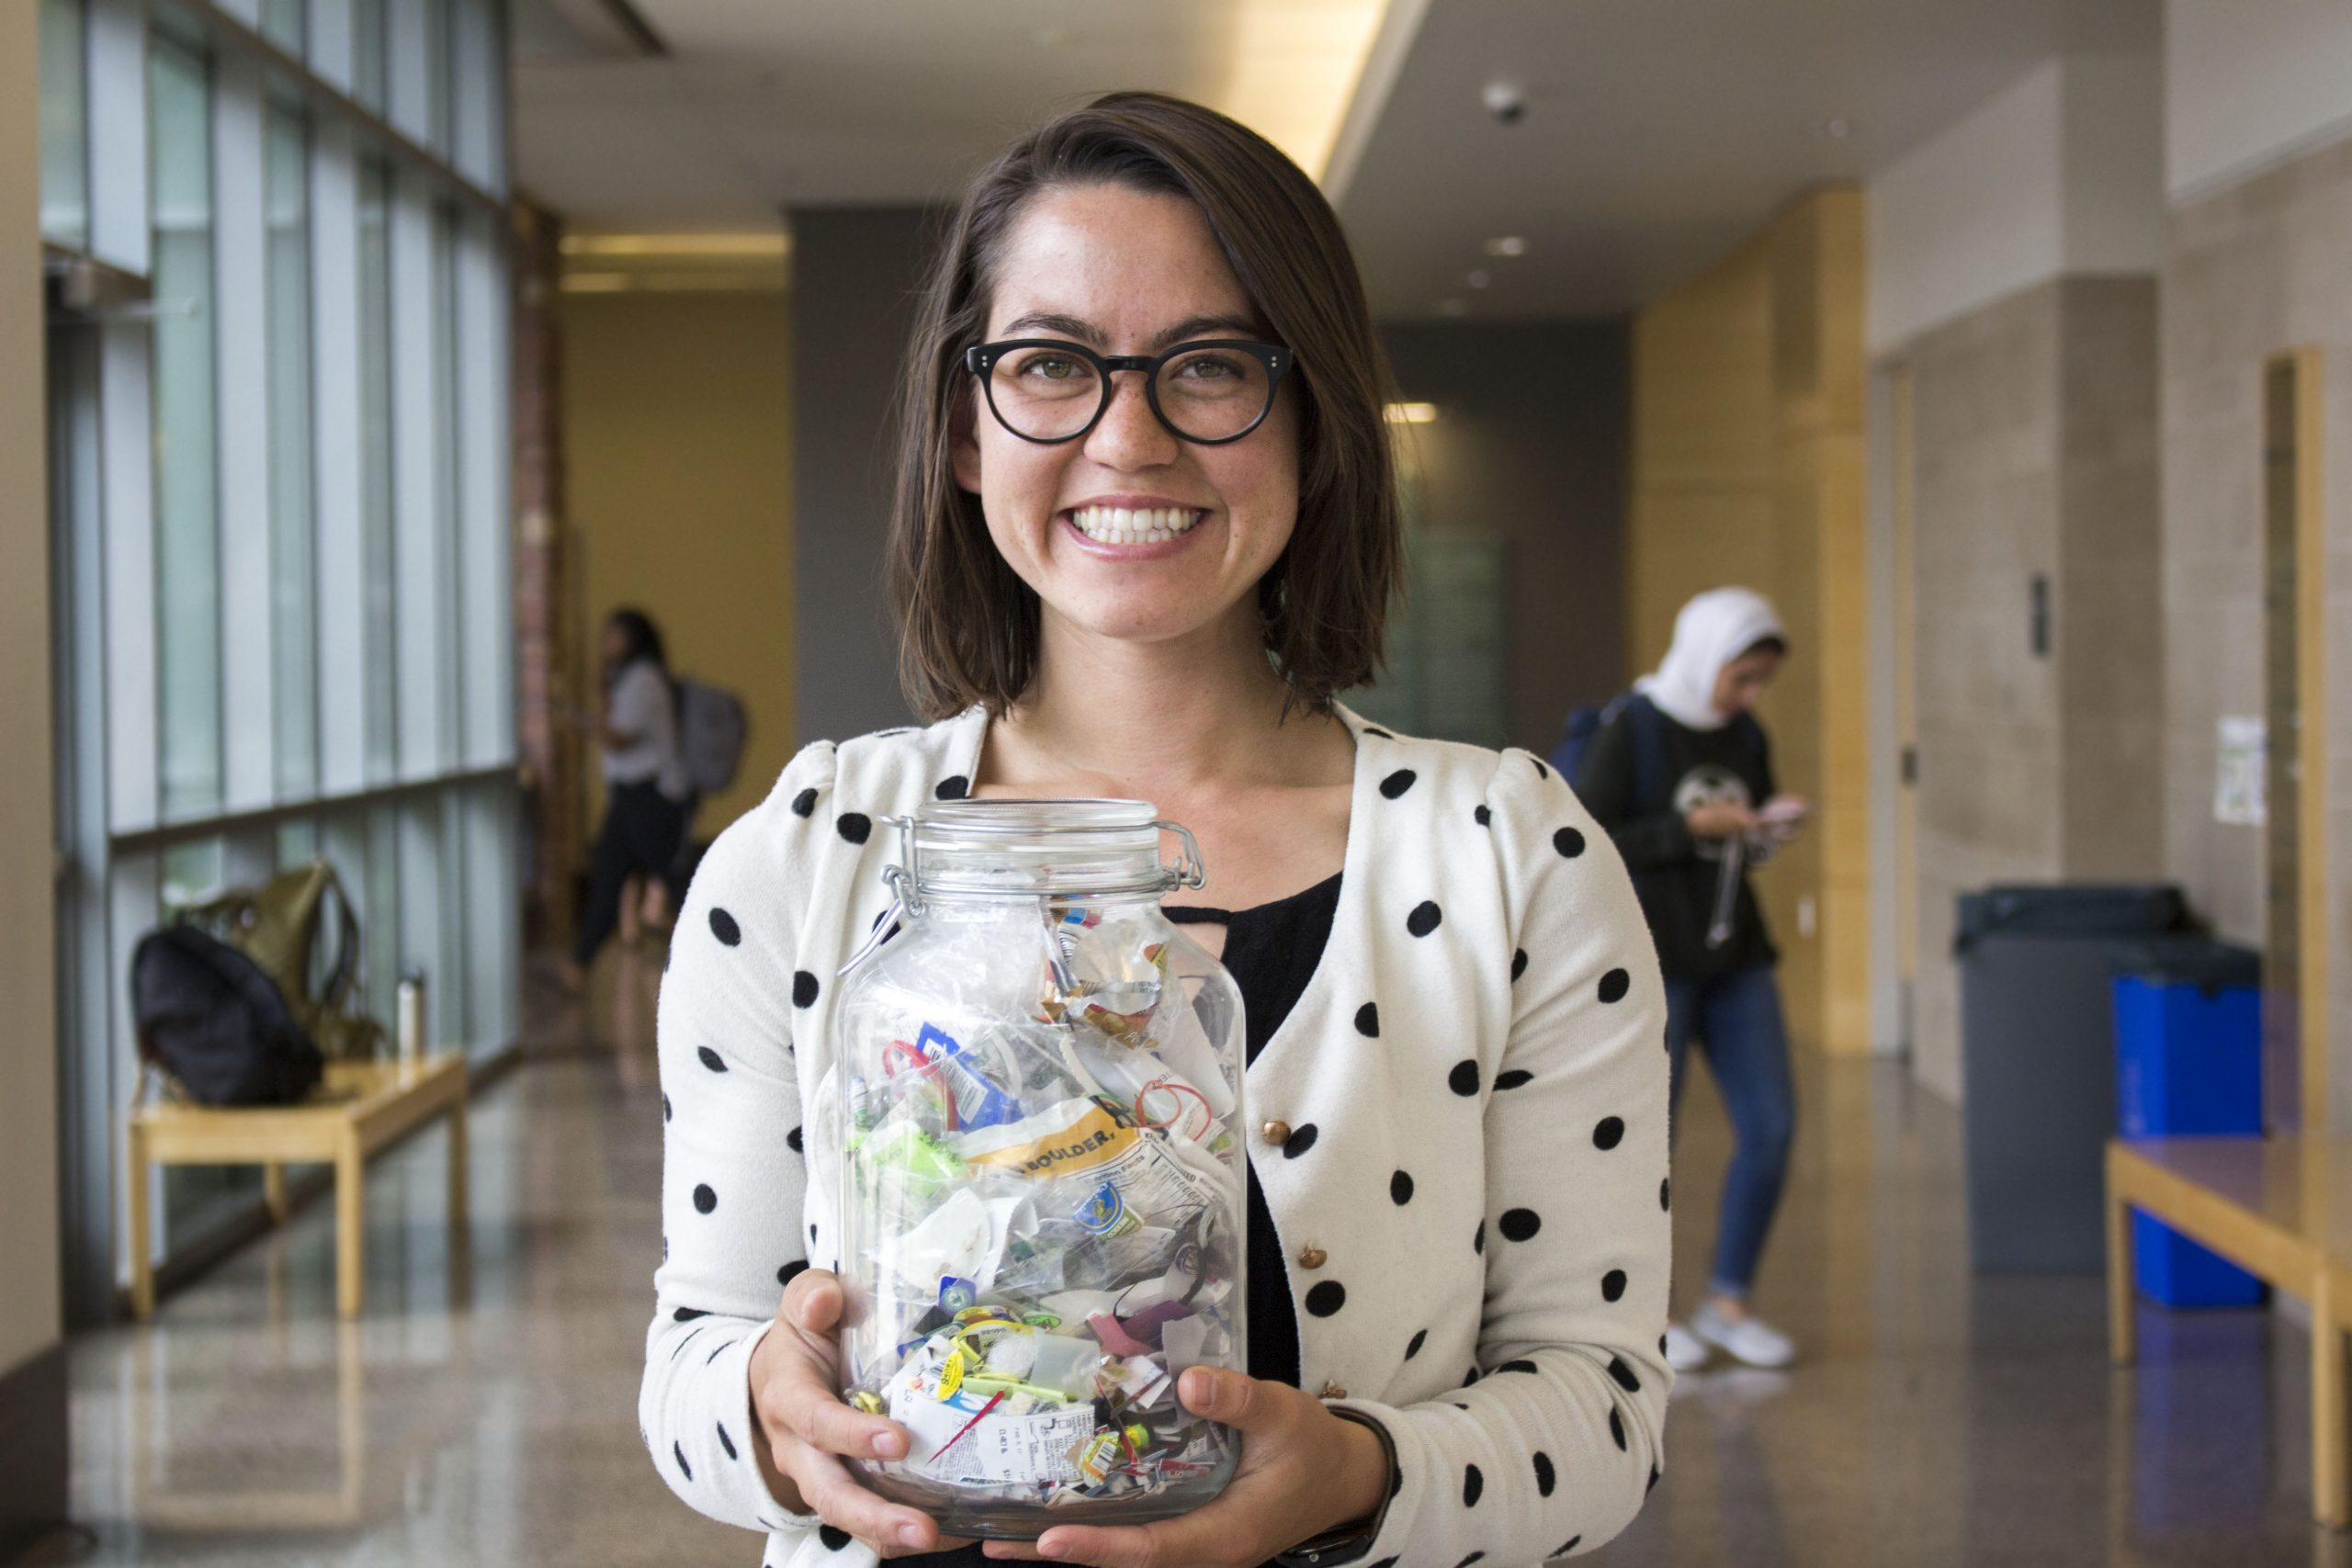 Marie Taylor, a senior Anthropology major, lives a minimal-waste lifestyle and holds a trash jar that contains all her nonrecyclable, noncompostable trash since January of this year.